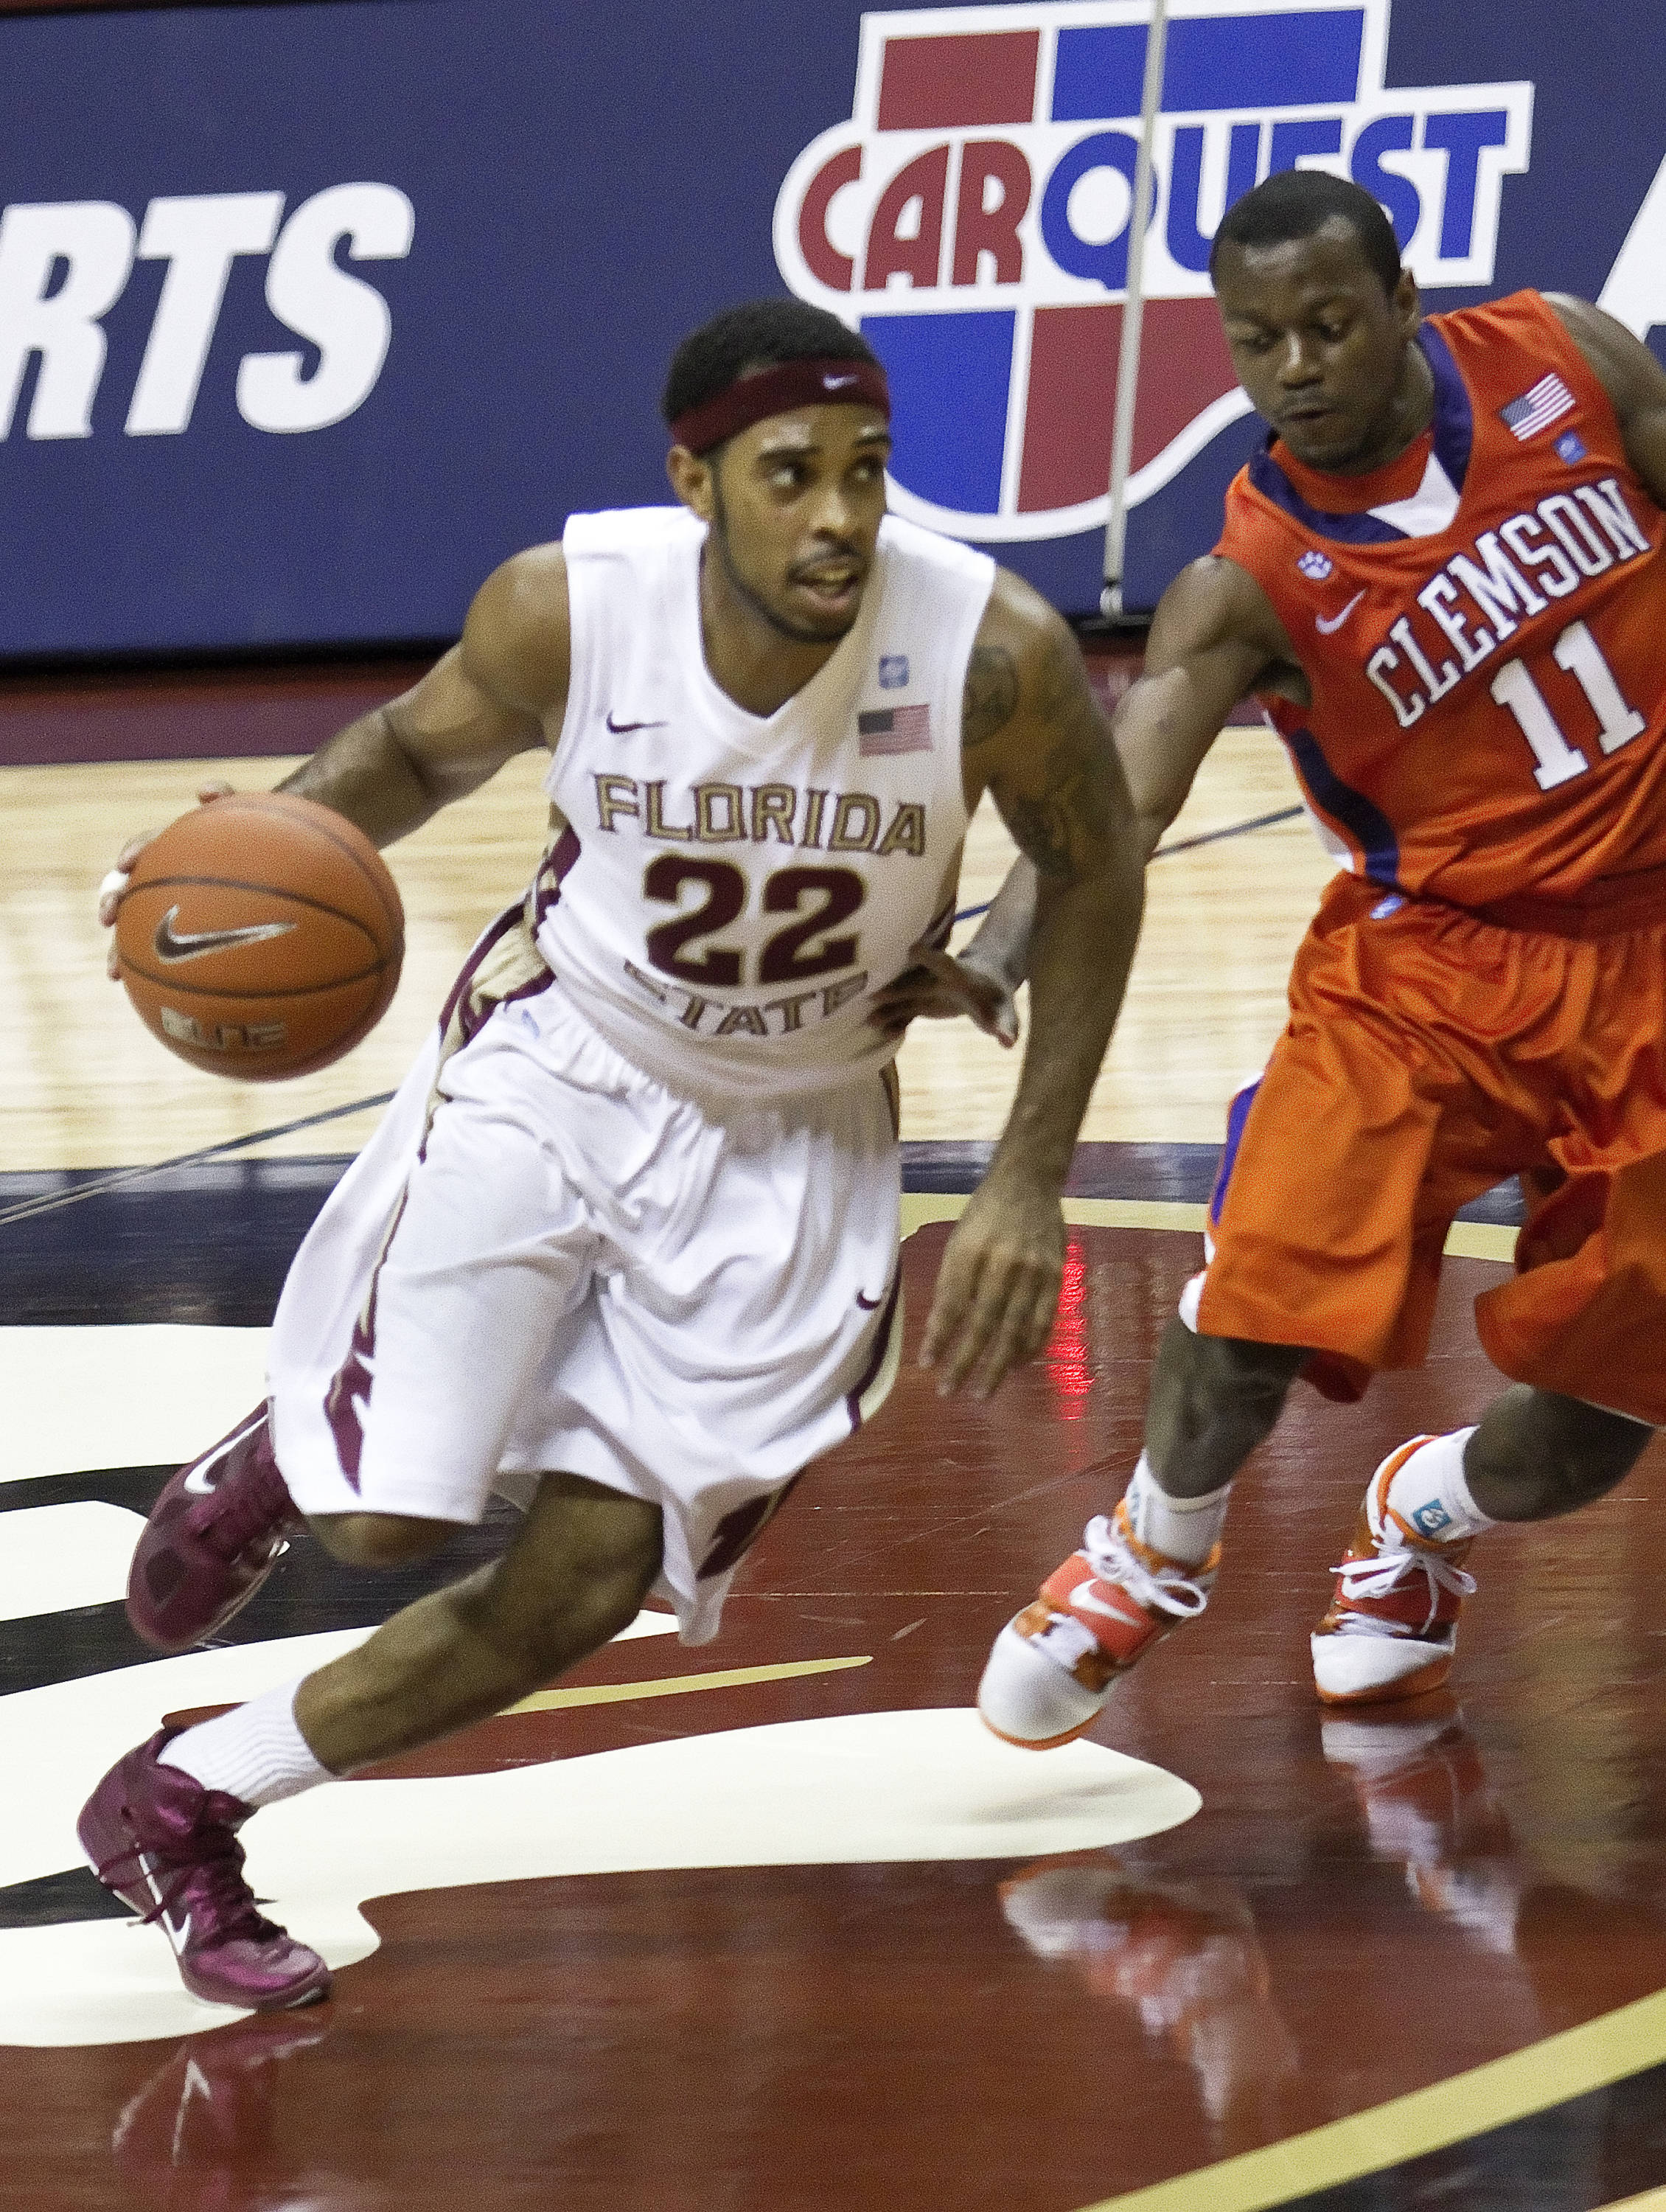 FSU vs Clemson - 12/12/2010 - Derwin Kitchen (22)